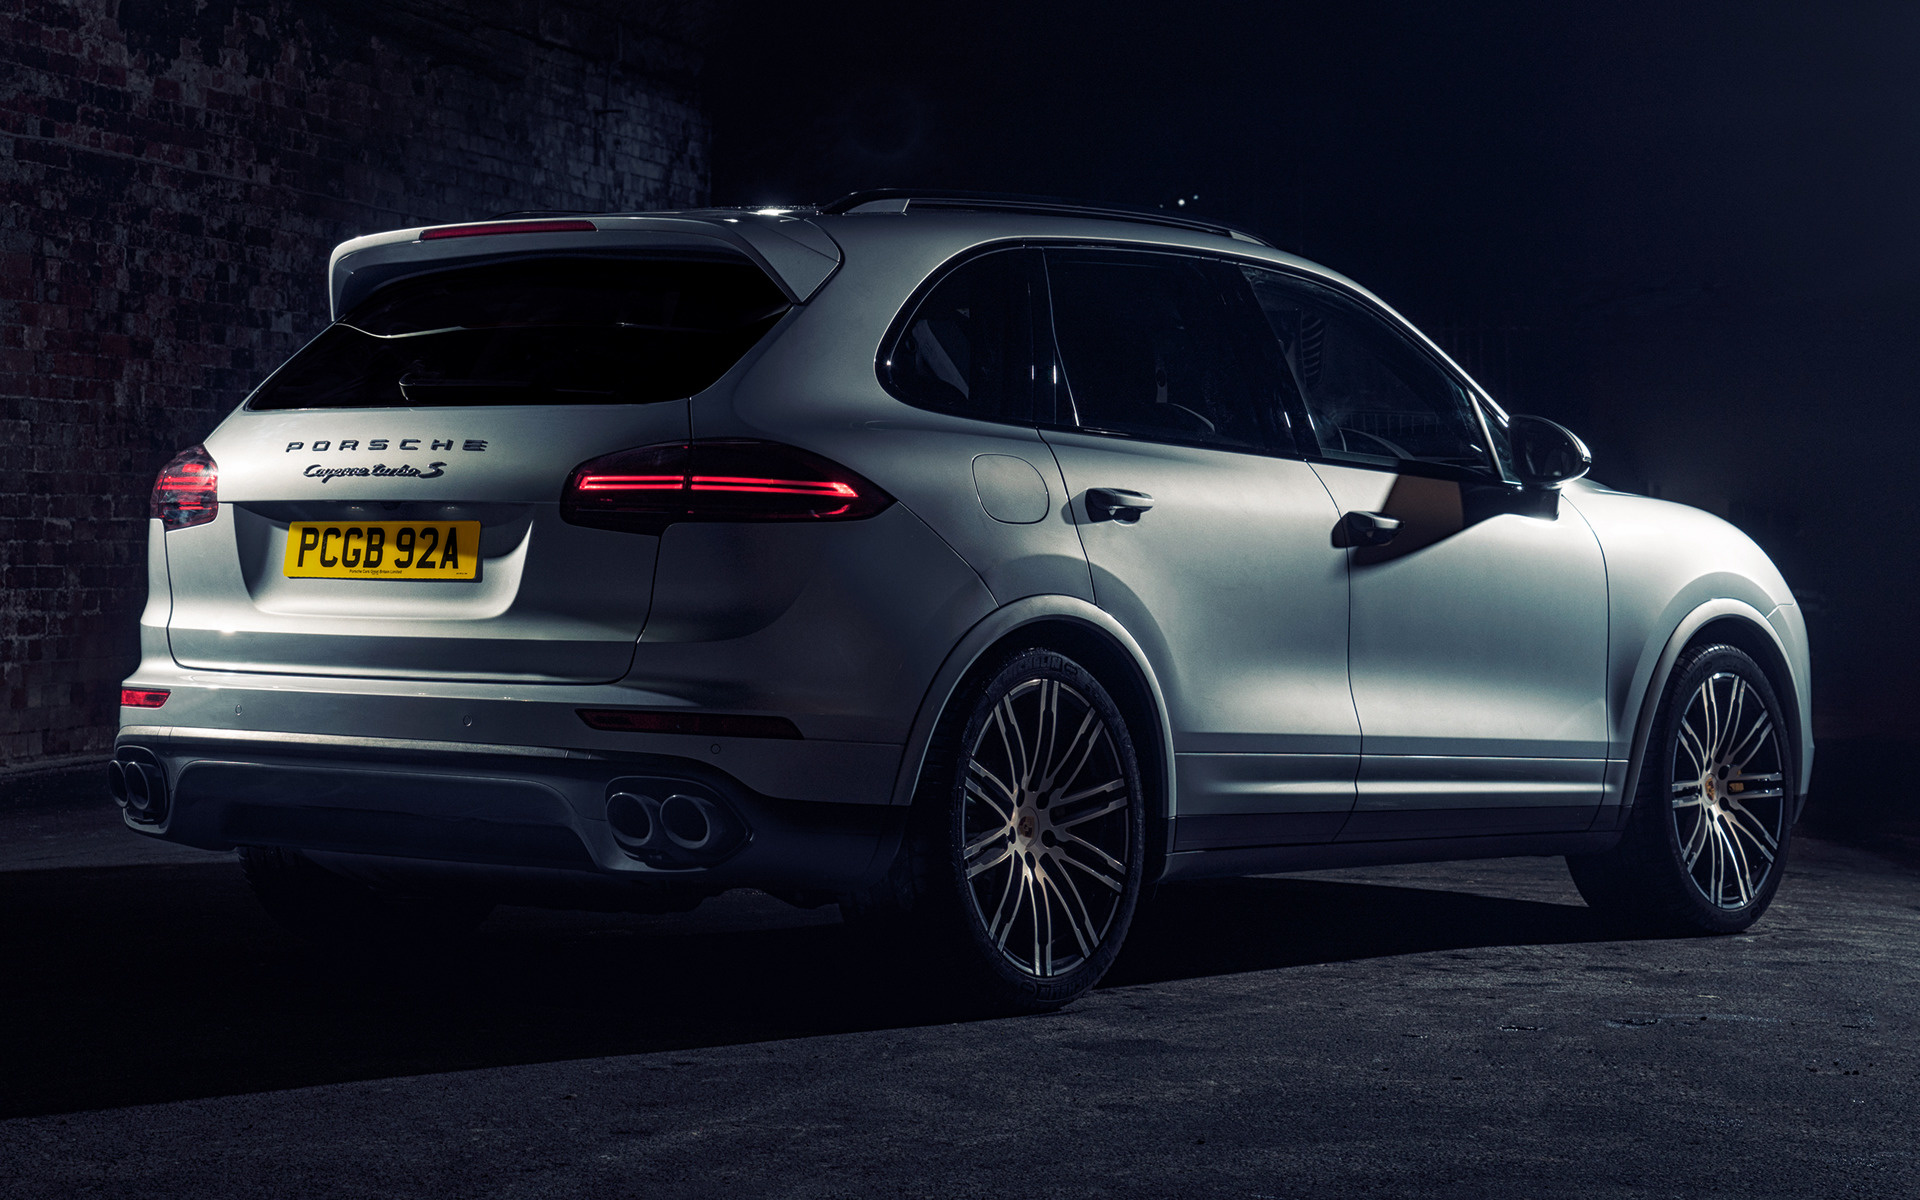 Porsche cayenne turbo s 2015 uk wallpapers and hd images car pixel wide 85 voltagebd Image collections